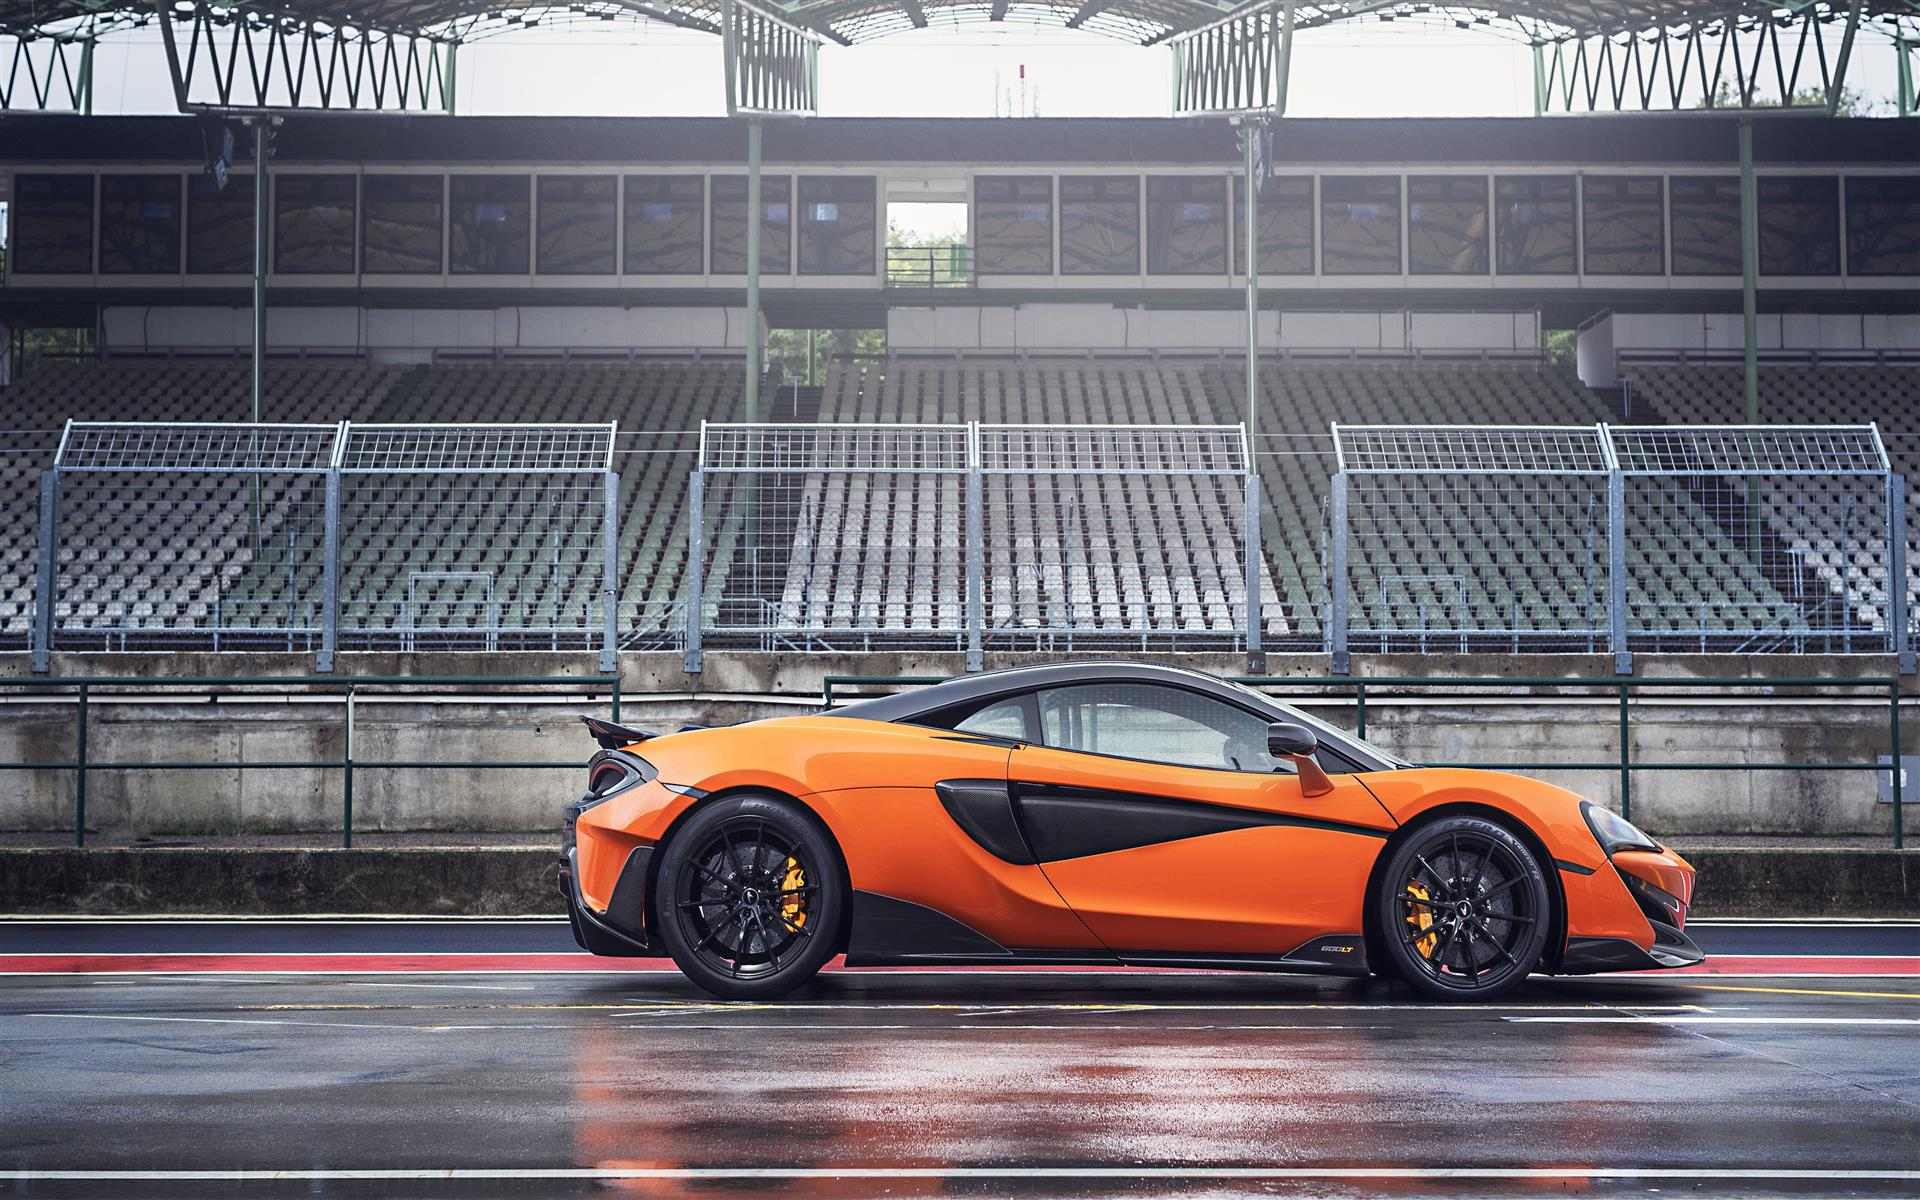 1920x1200 5K Image of 2019 McLaren 600LT Spider Car